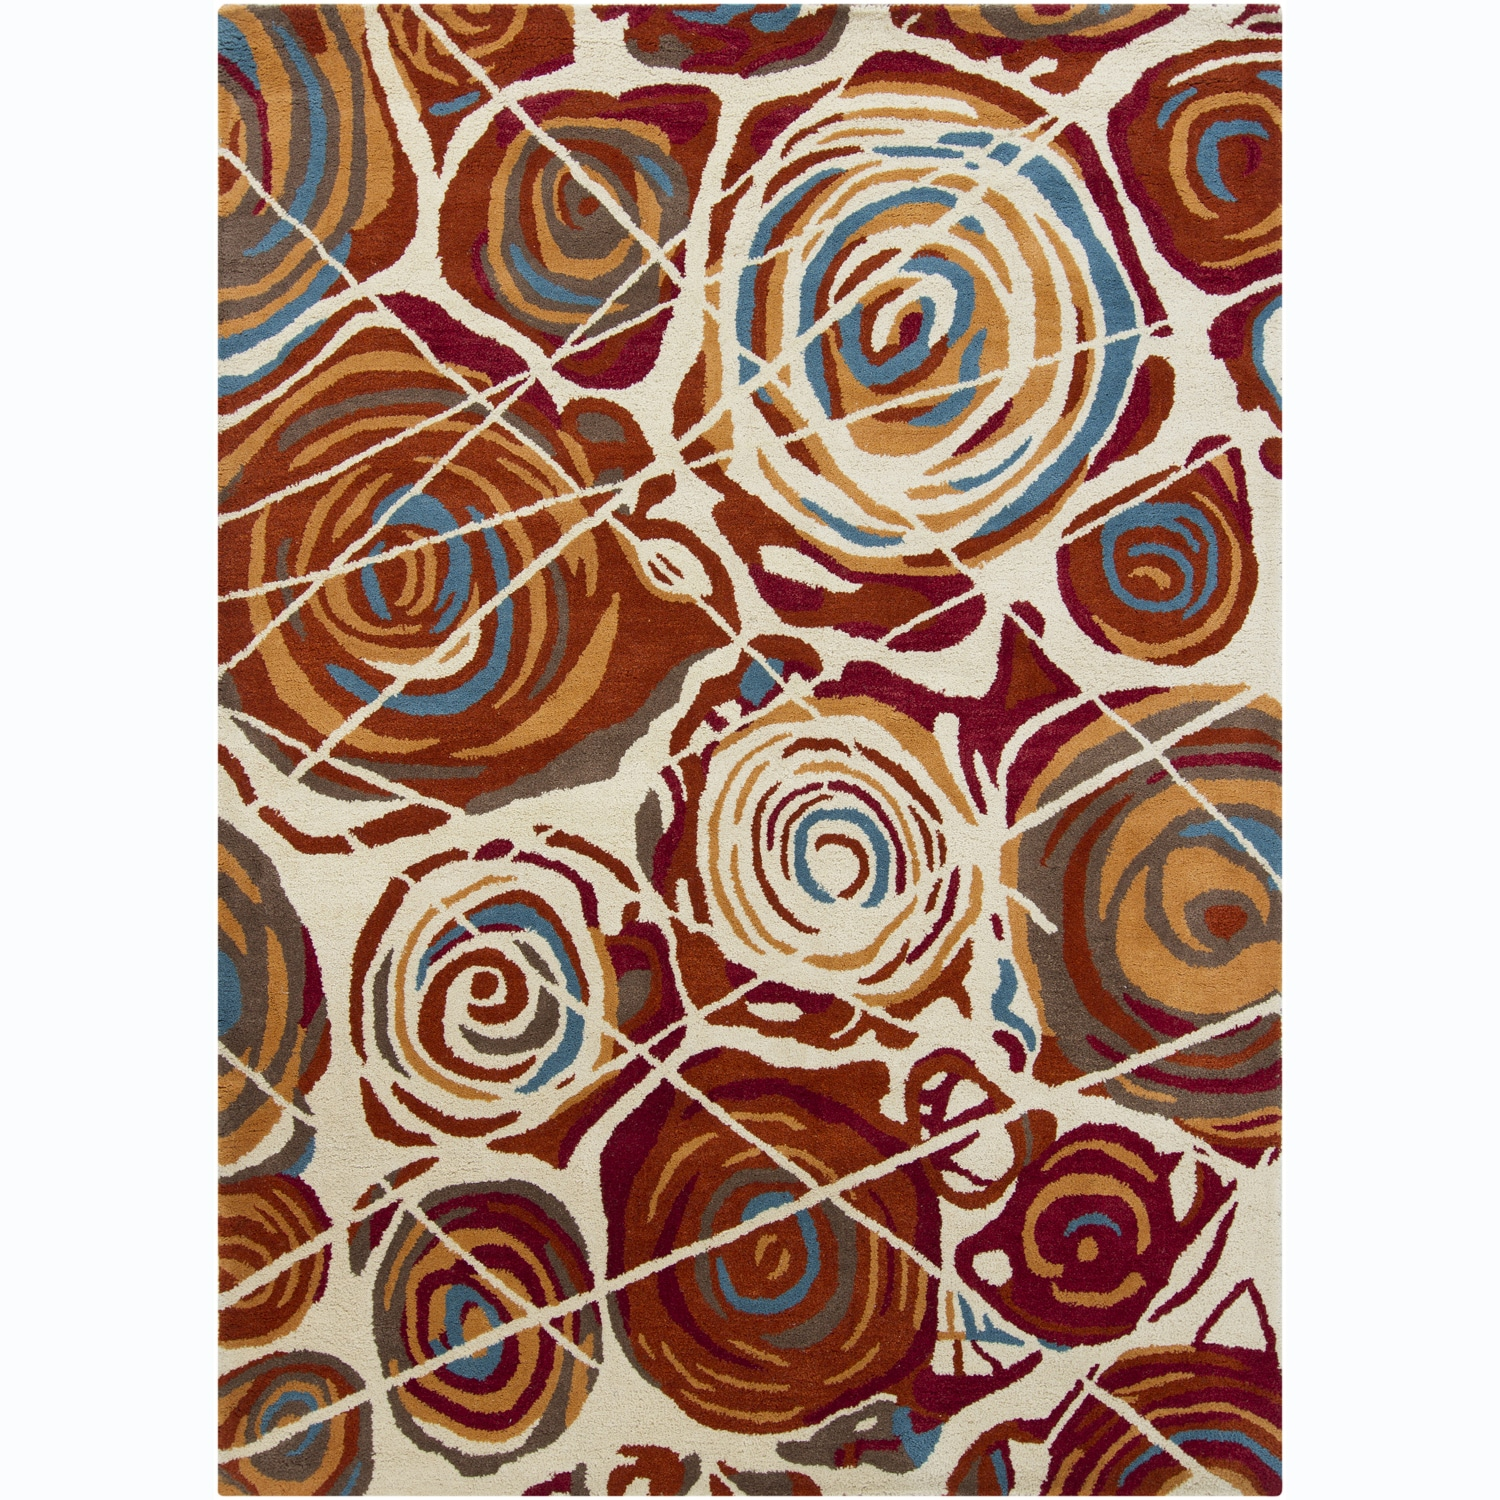 Artist's Loom Hand-tufted Contemporary Abstract Wool Rug (7'x10') - 7' x 10'